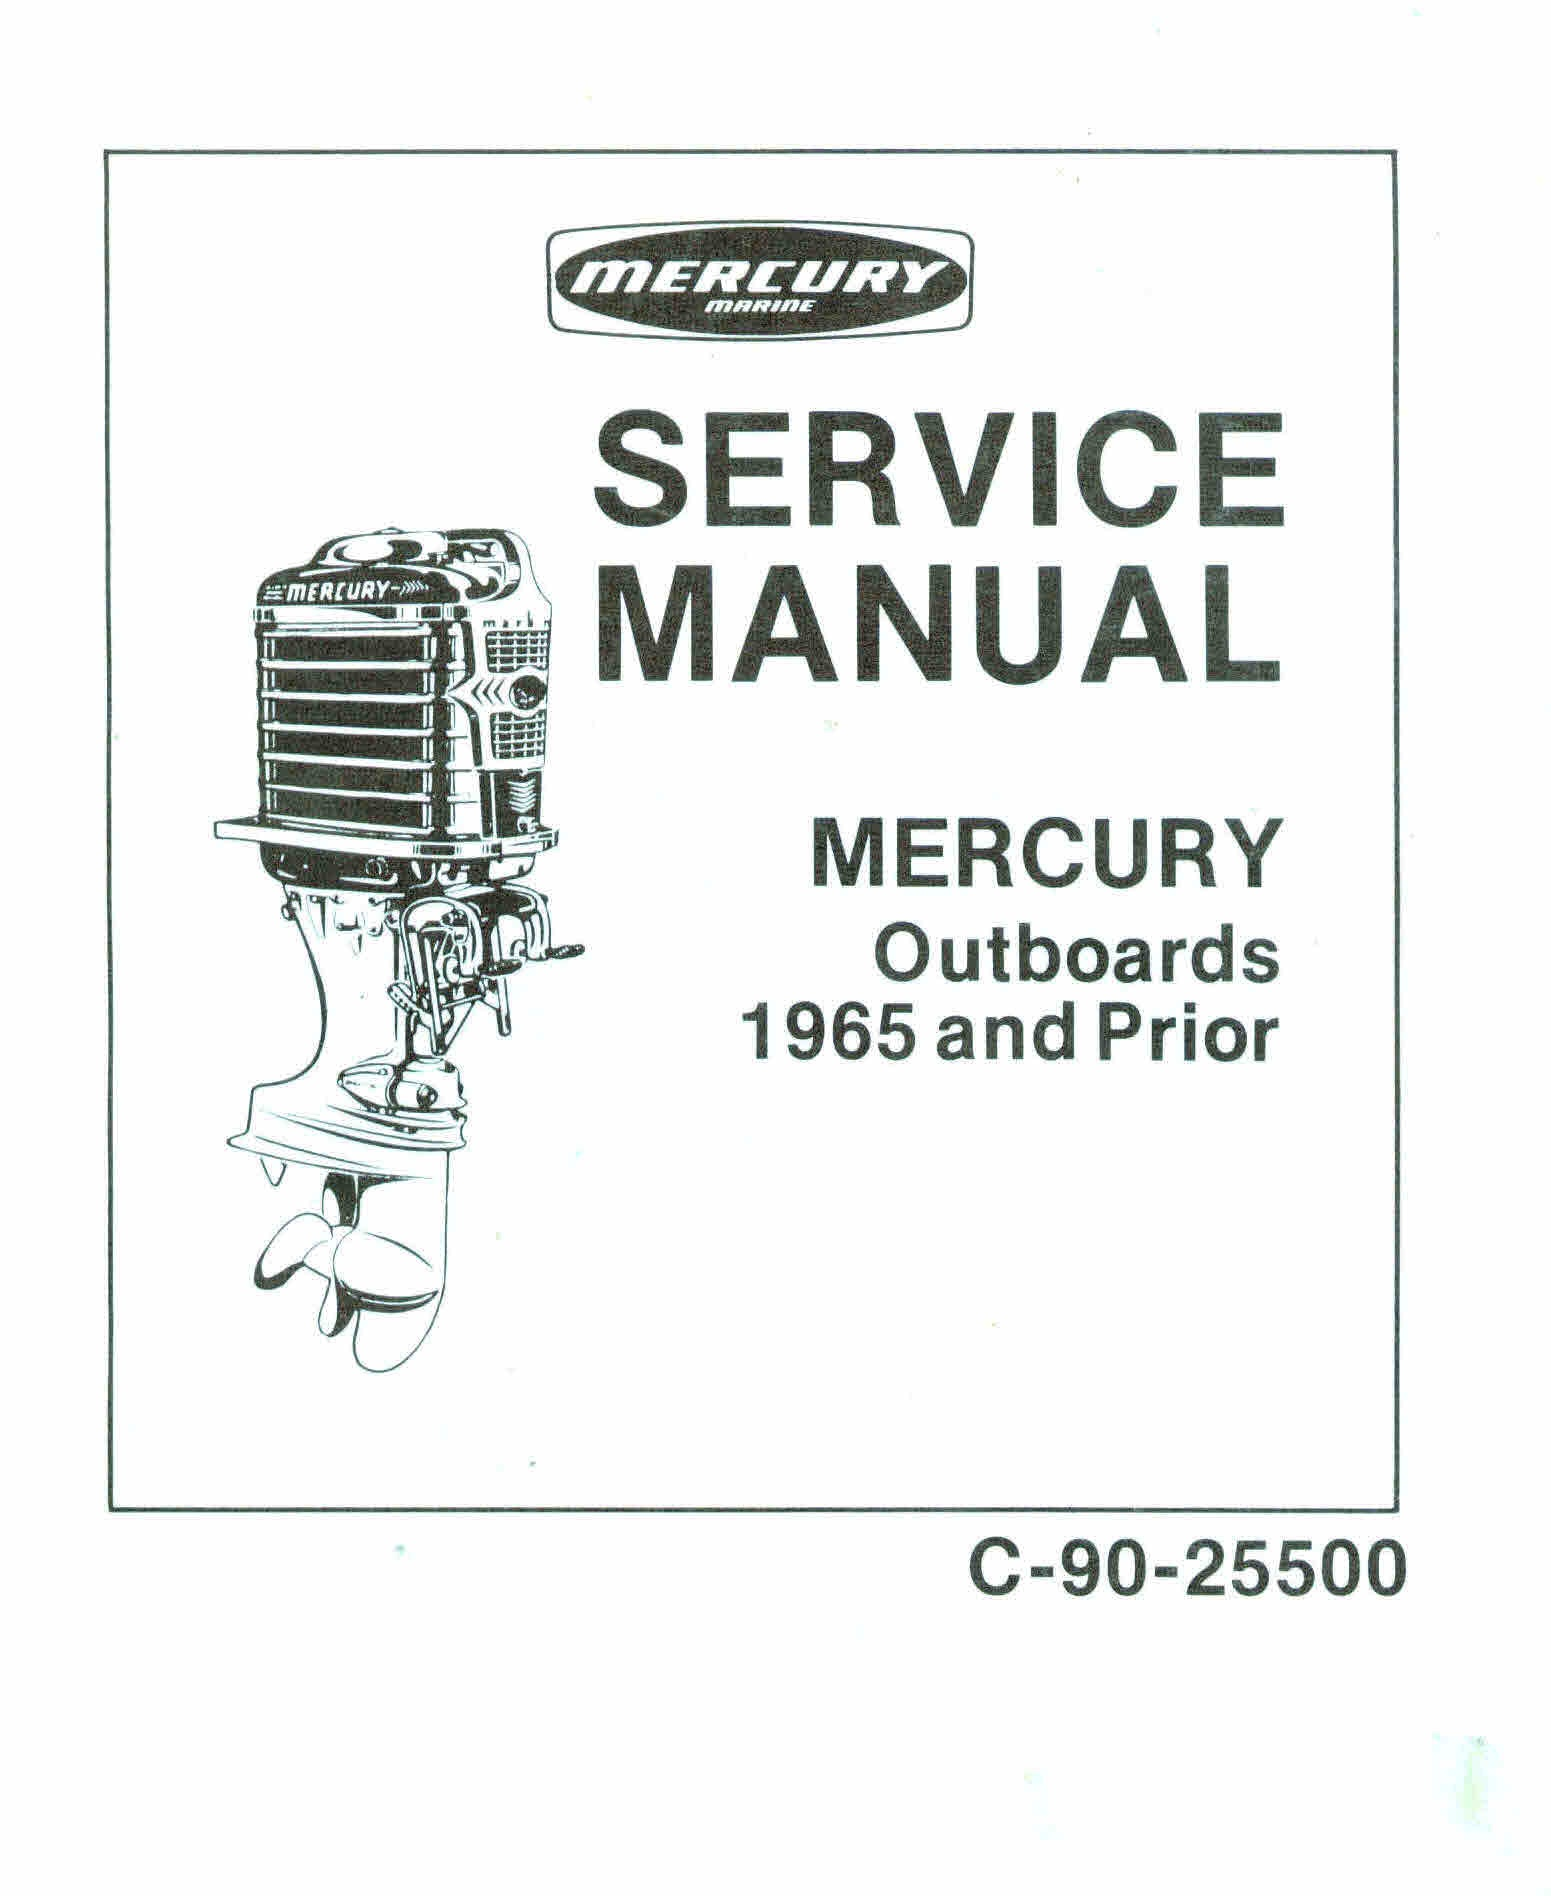 1997 Mercury 115 Outboard Motor Service Manual